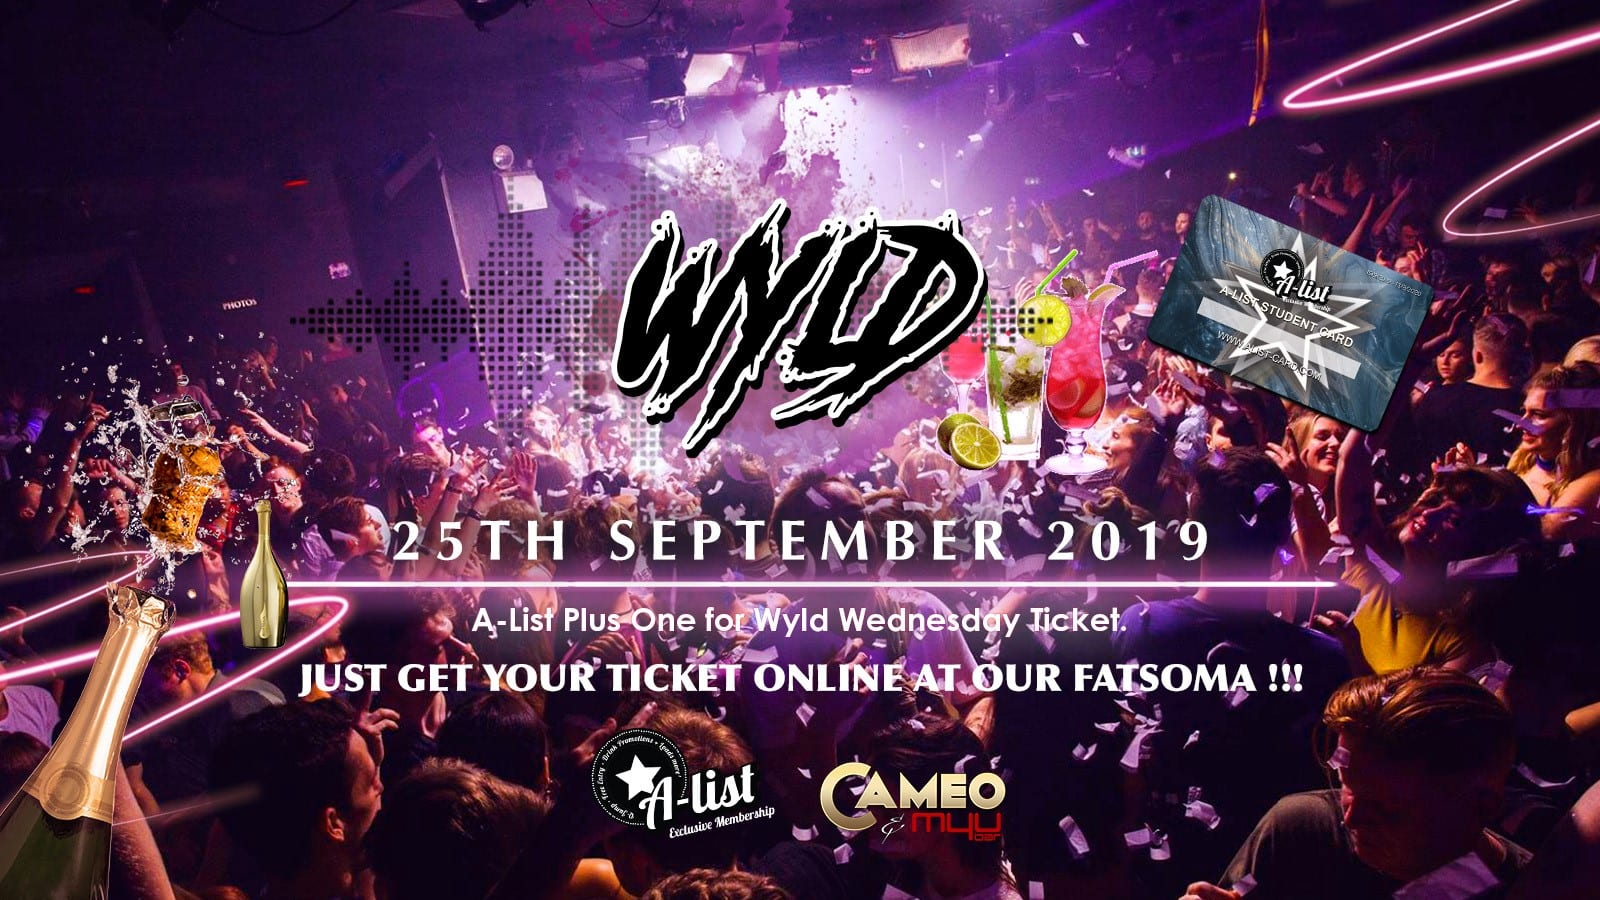 Cameo Wyld Wednesday Plus One Guest: Wed 25th September: A-List Ticket